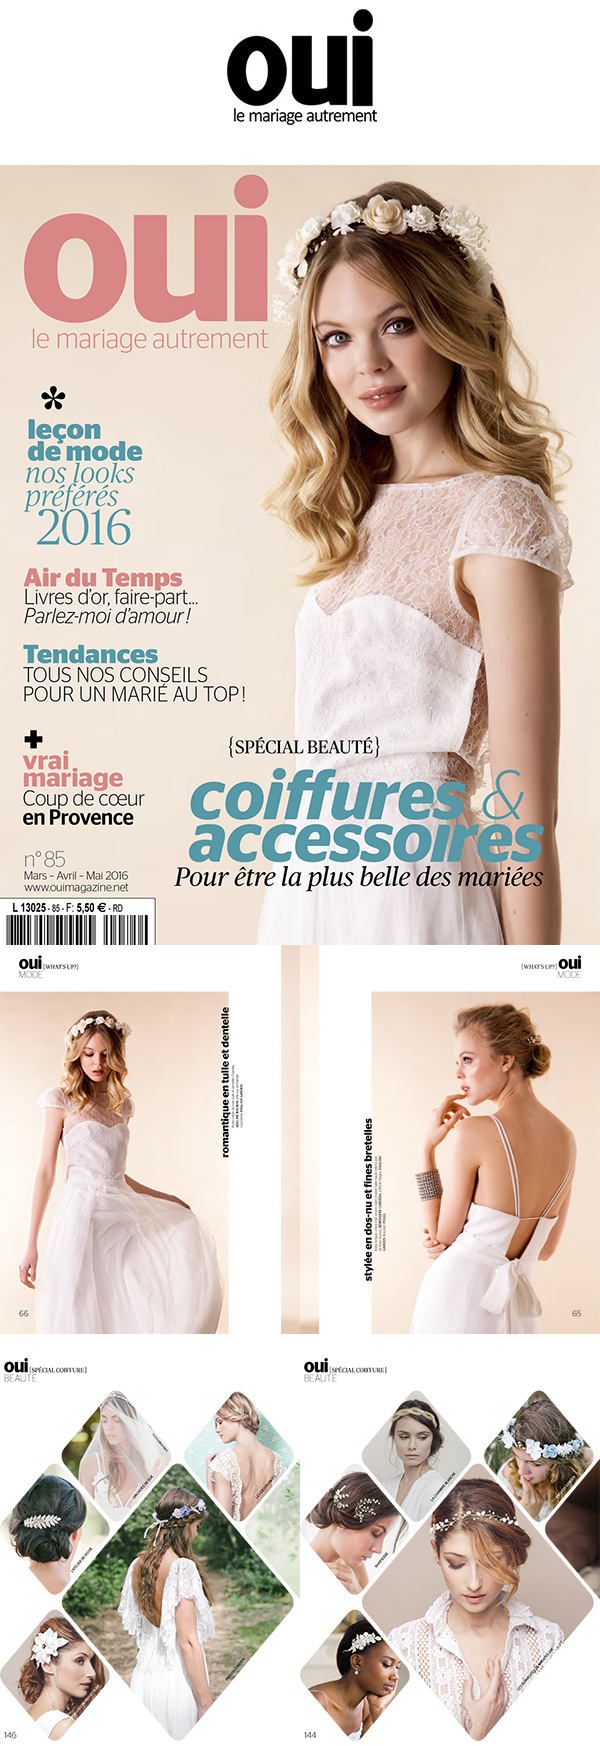 Article Oui Magaziner